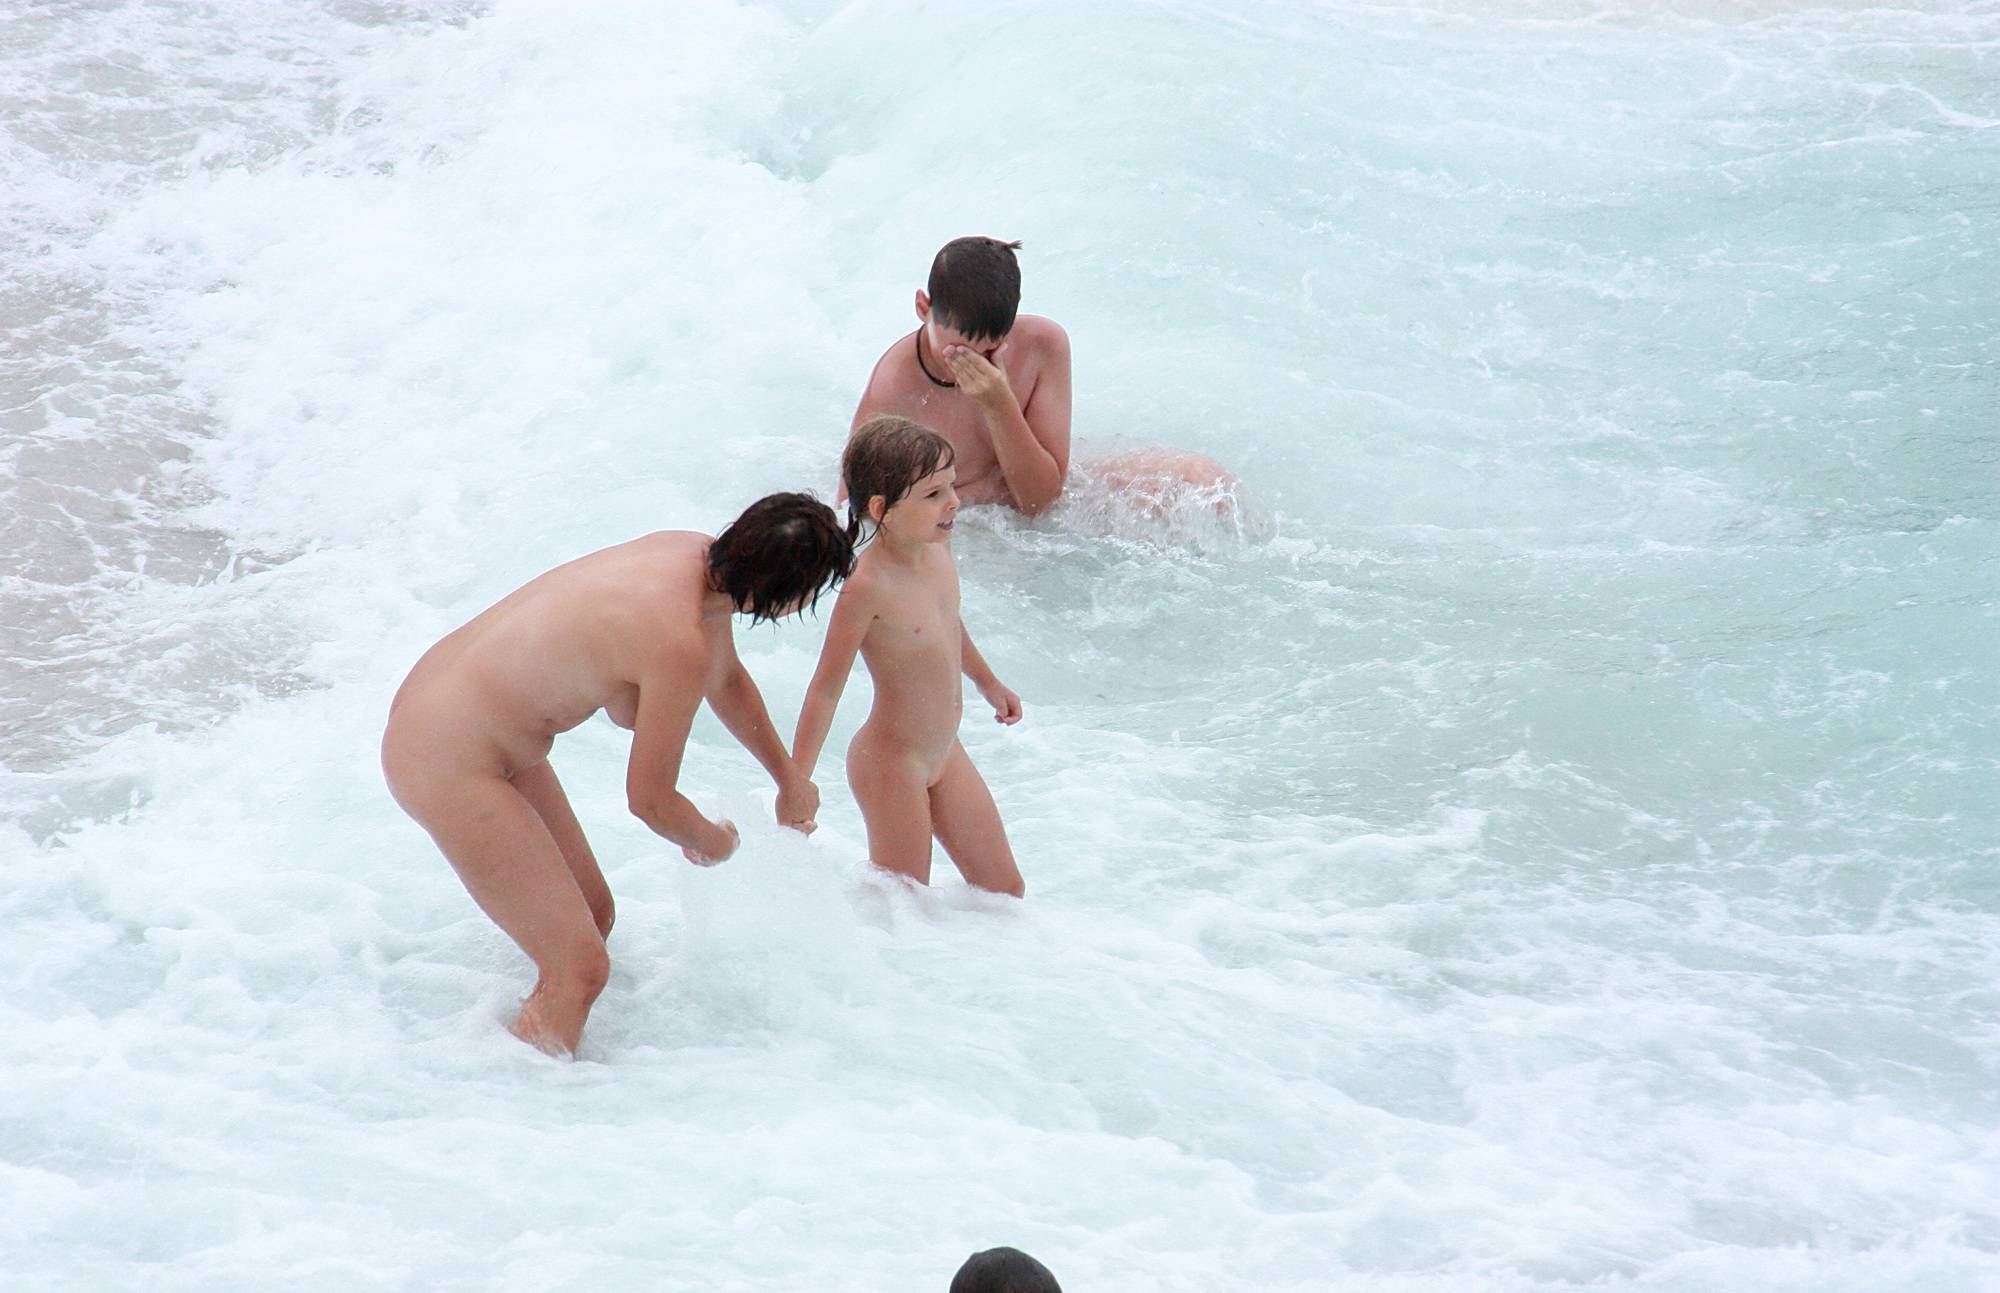 Nudist Pictures Loving All The Sea Life - 1